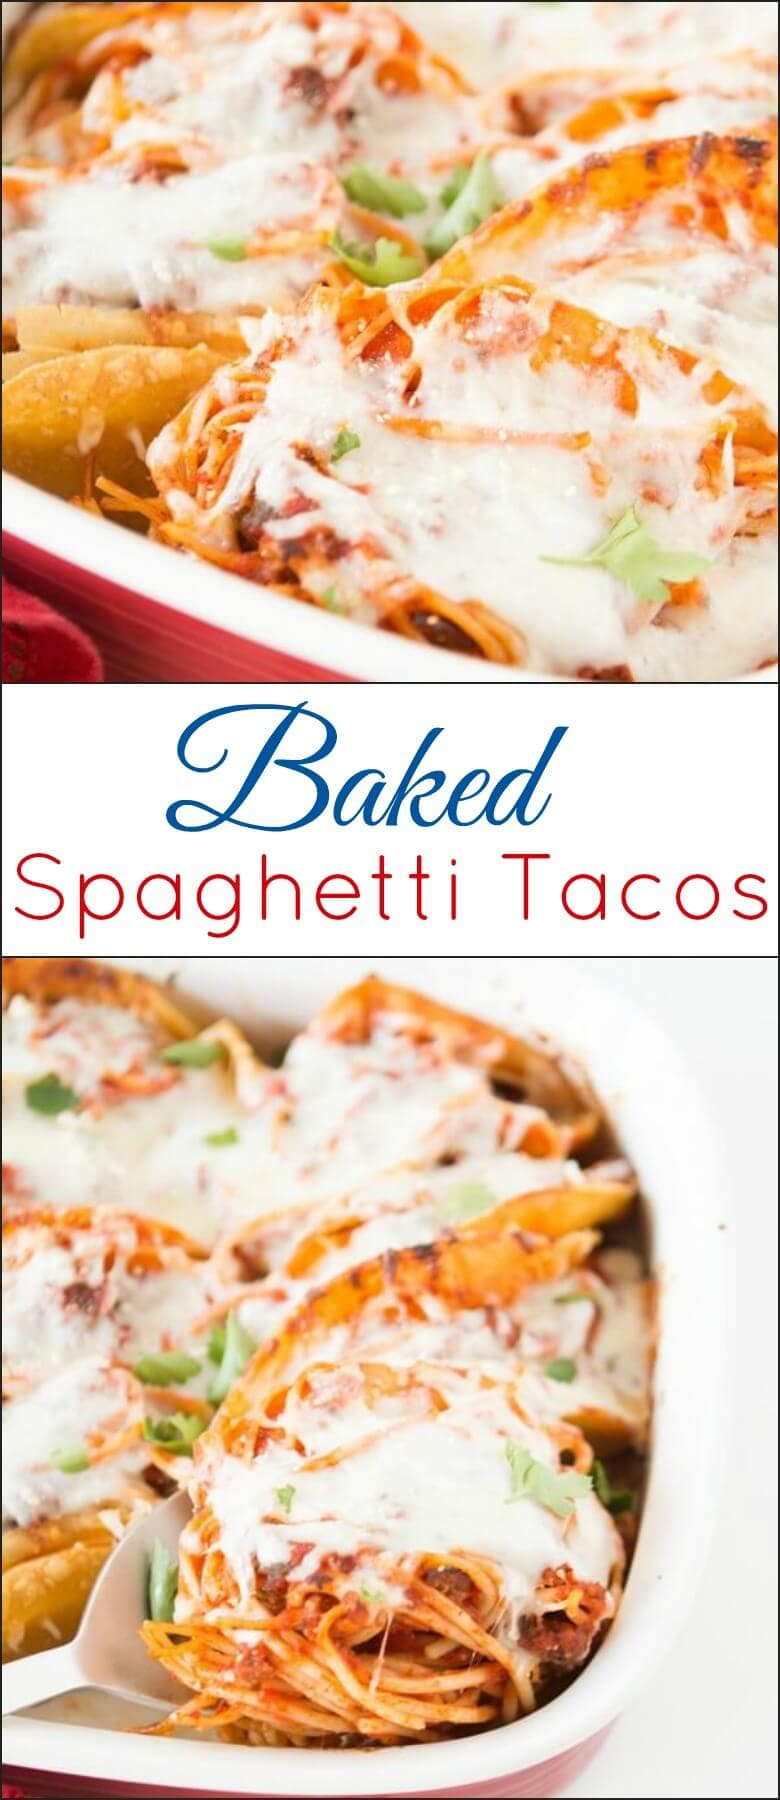 Baked Spaghetti Tacos ohsweetbasil.com iCarly party